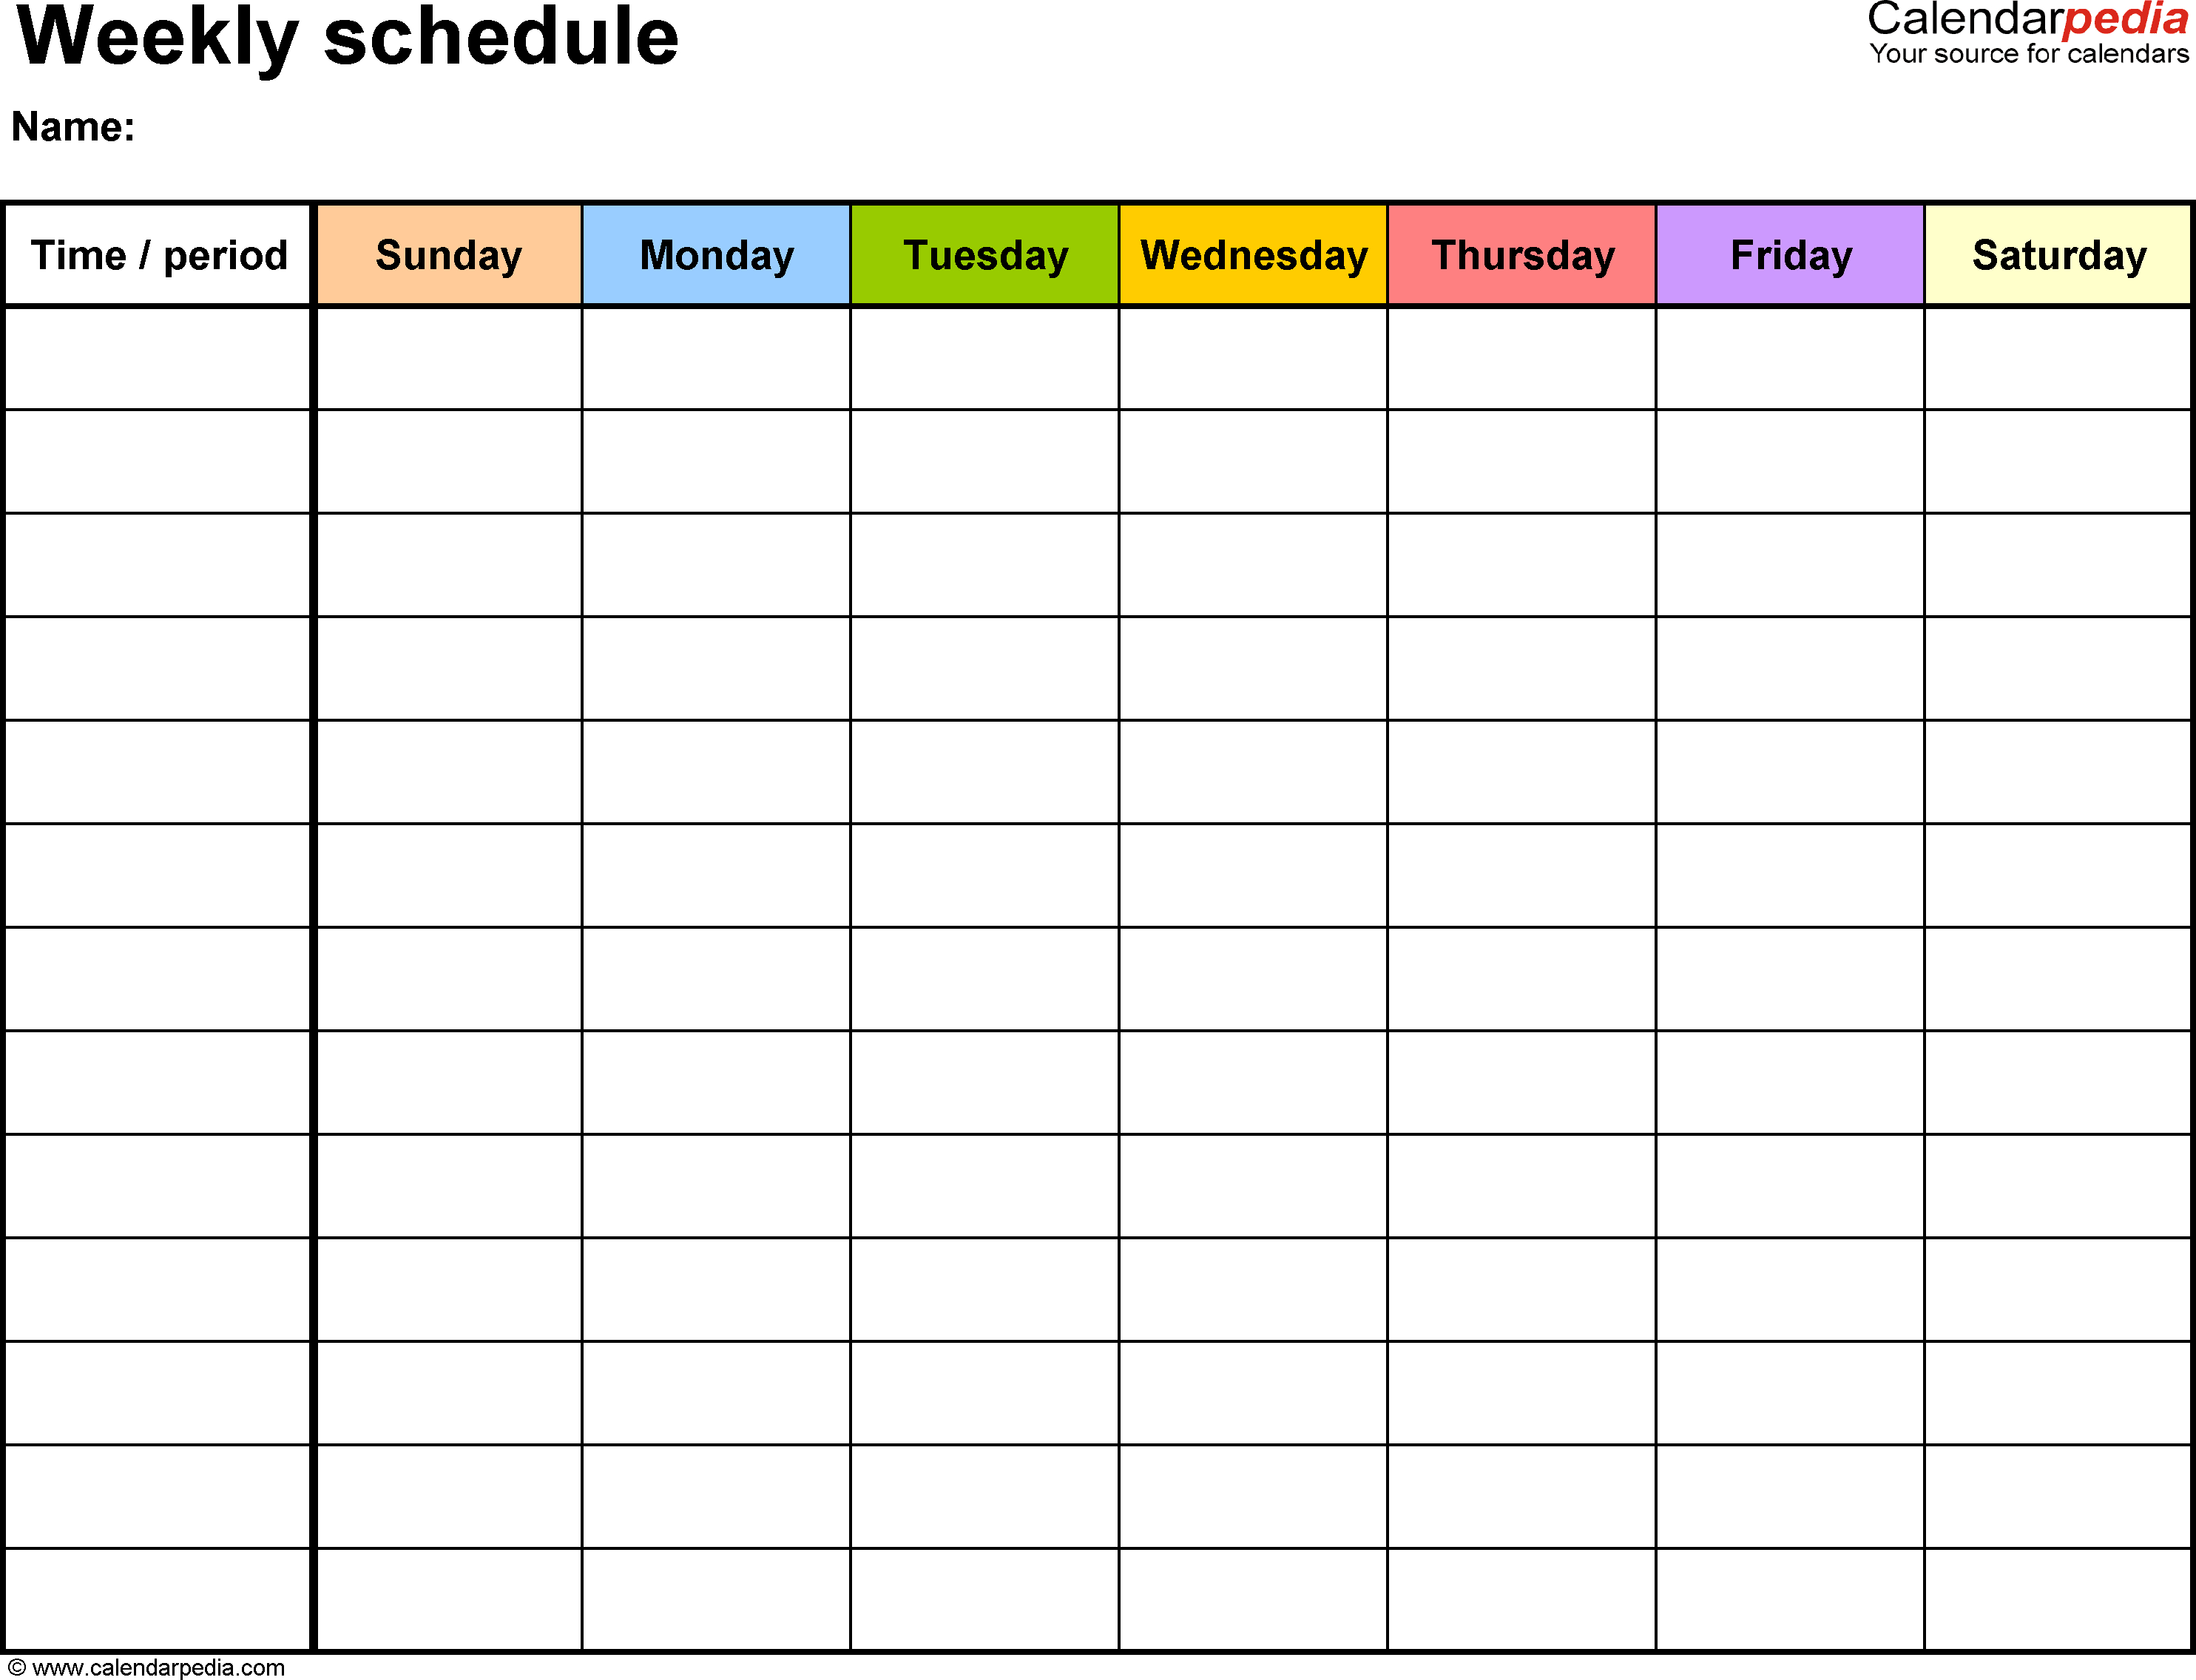 Weekly Schedule Template For Word Version 13: Landscape, 1 Saturday Through Friday Calendar